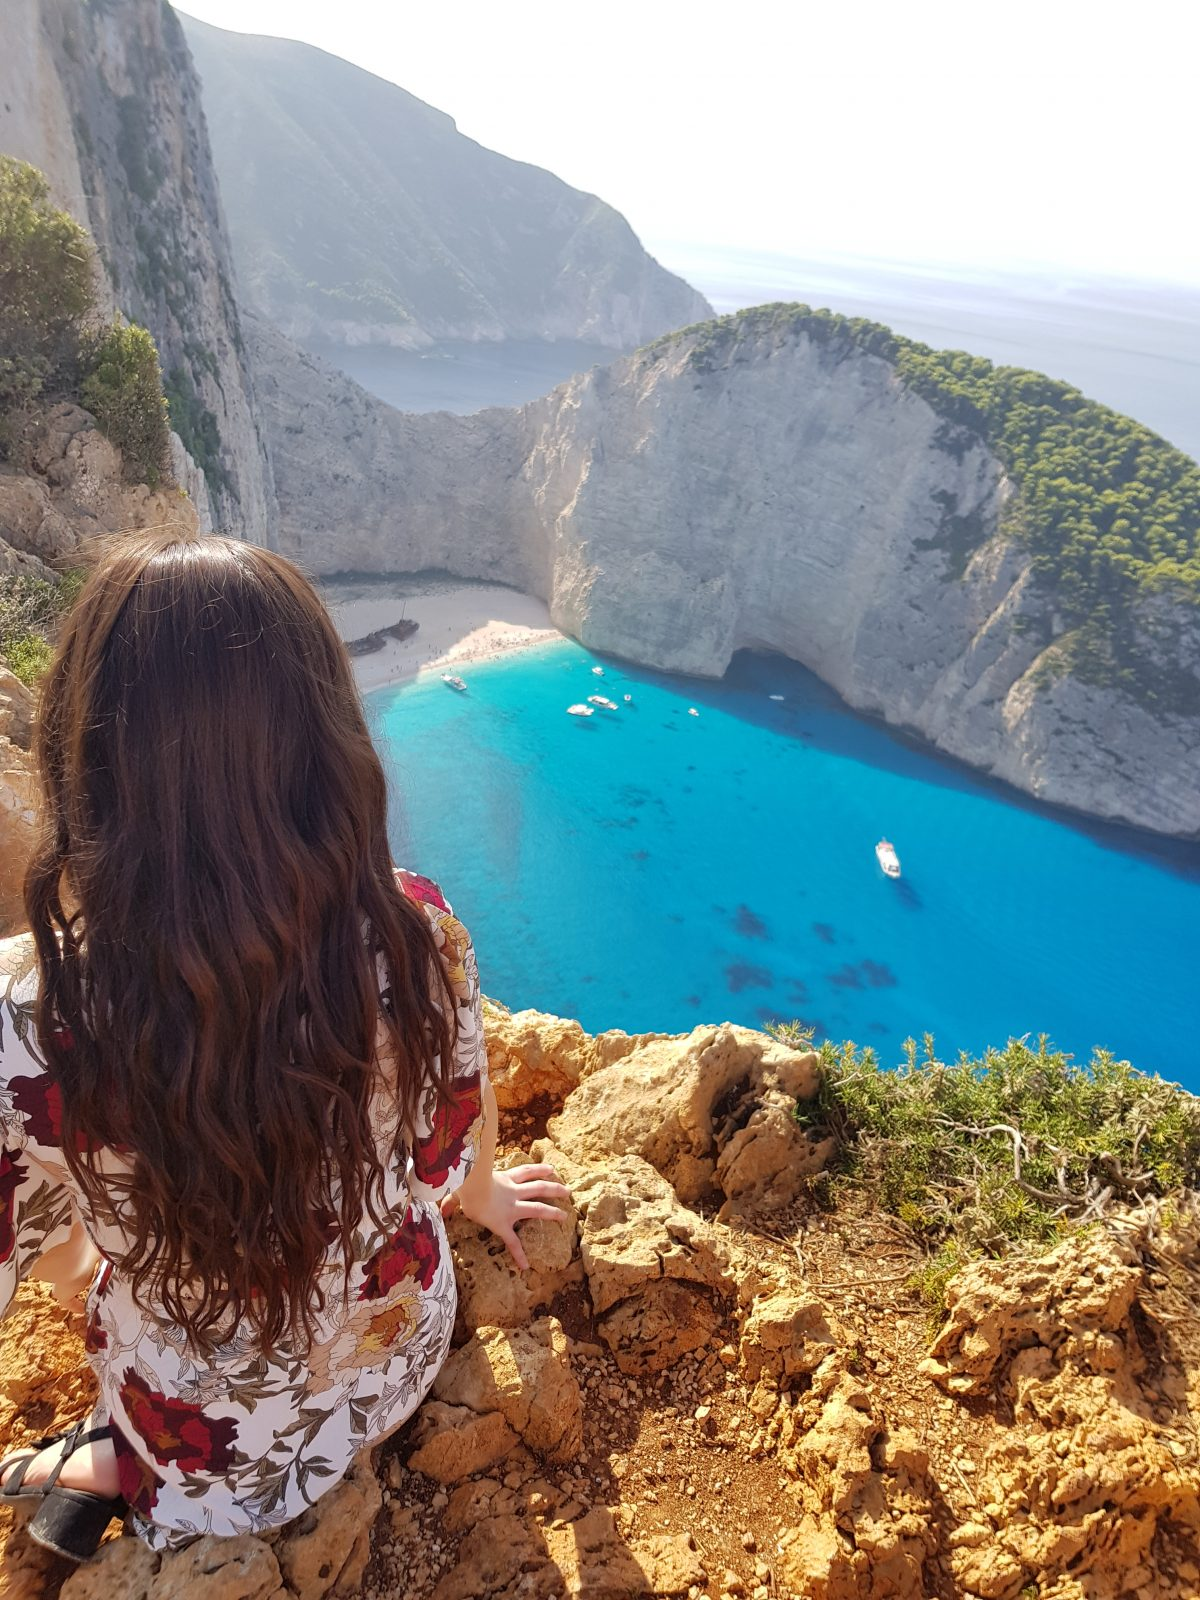 How to get to the Instagram viewpoint at Shipwreck beach Zante